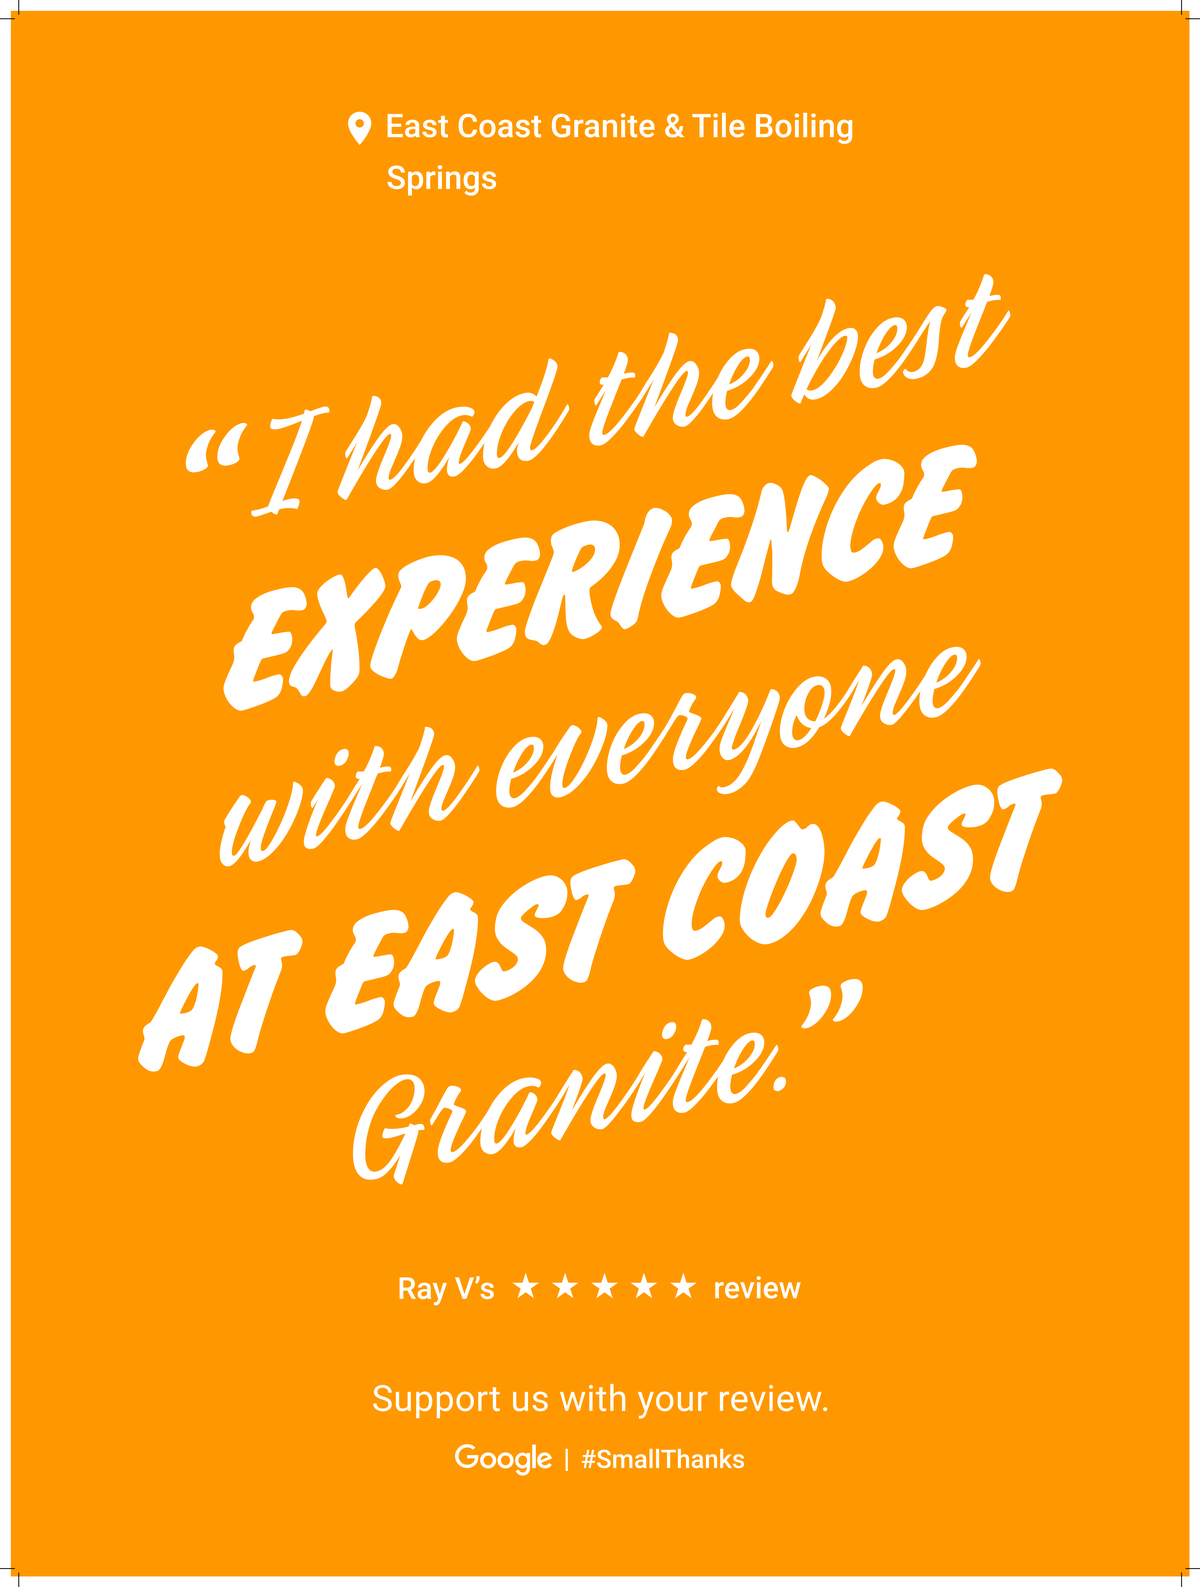 Google Review Greenville from Ray V - I had the best experiance with everyone at East Coast Granite